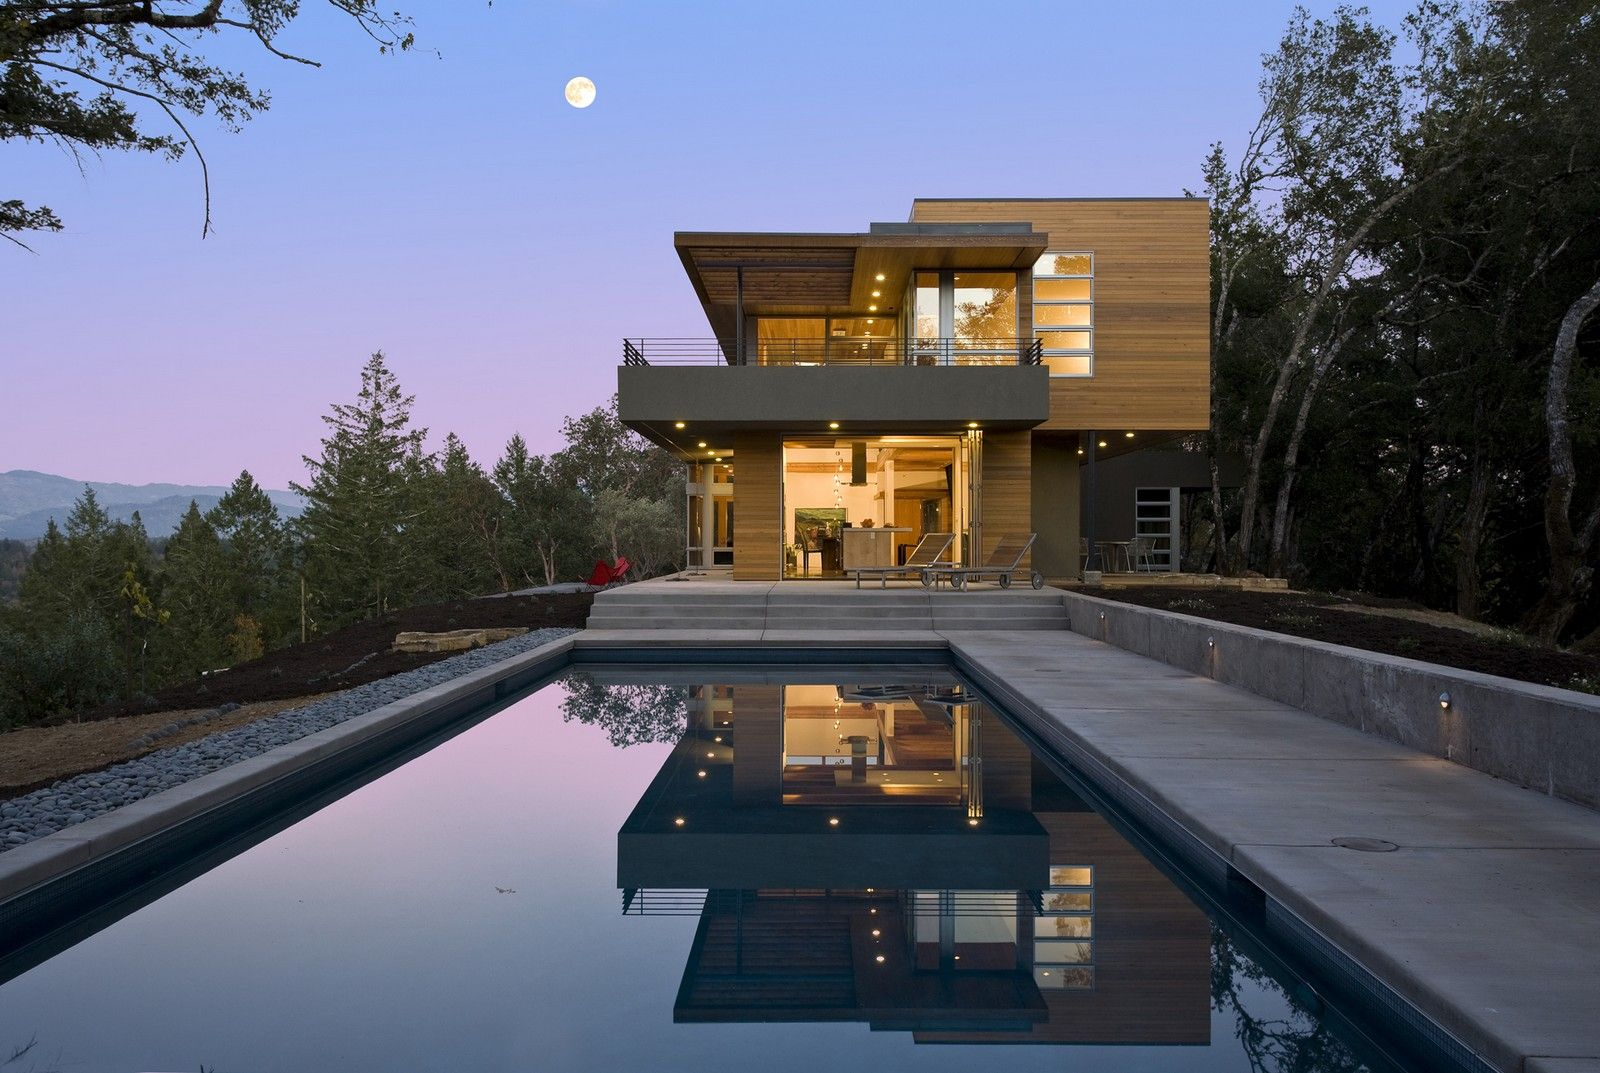 The owners, along with their young son and a baby on the way, resided in a stately residence atop San Francisco's Nob Hill when they decided to create a family retreat in Healdsburg, a small town in the heart of Northern California's wine country.